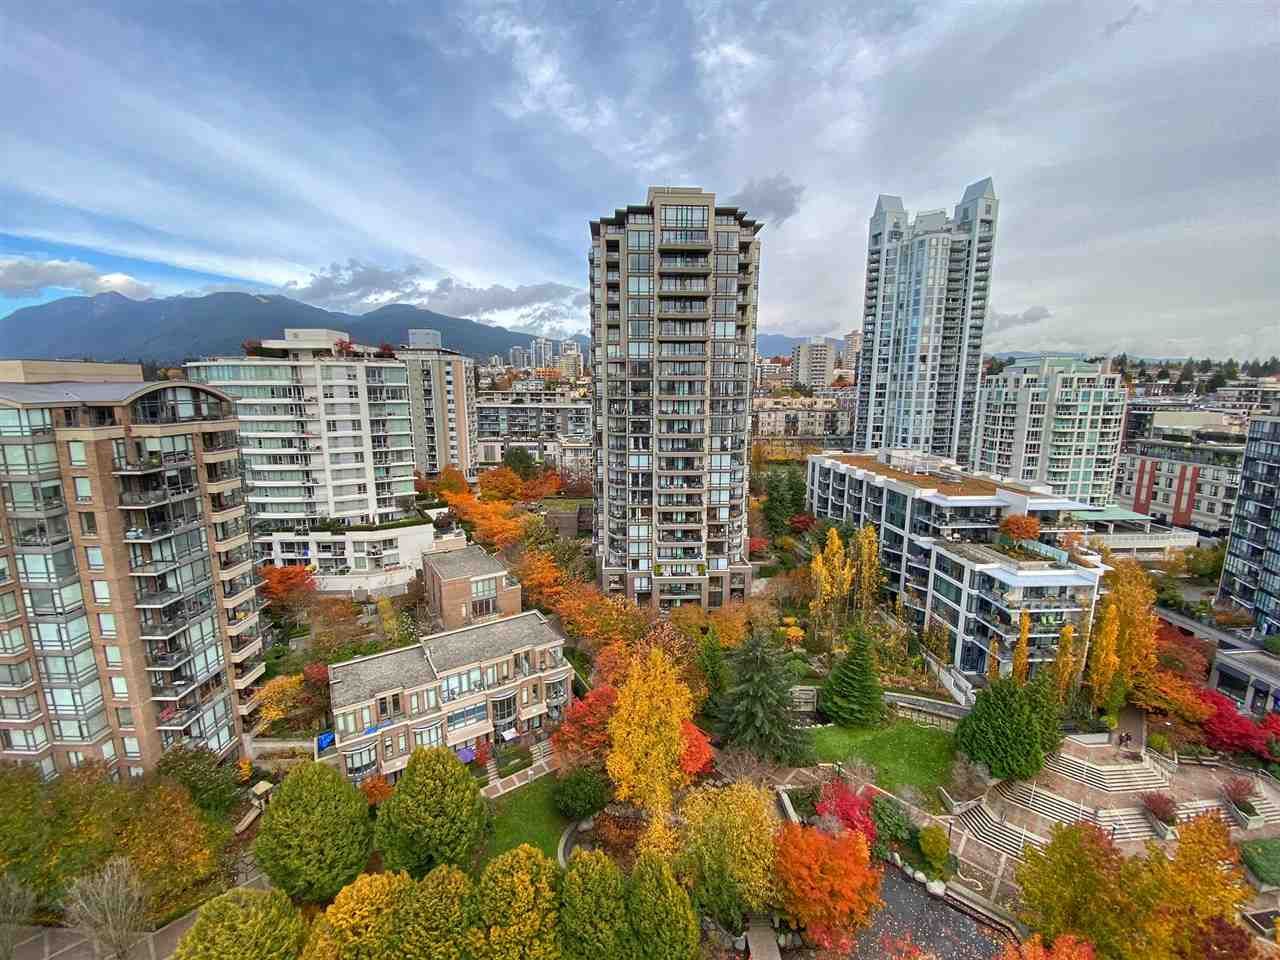 903 151 W 2ND STREET - Lower Lonsdale Apartment/Condo for sale, 2 Bedrooms (R2539553) - #31